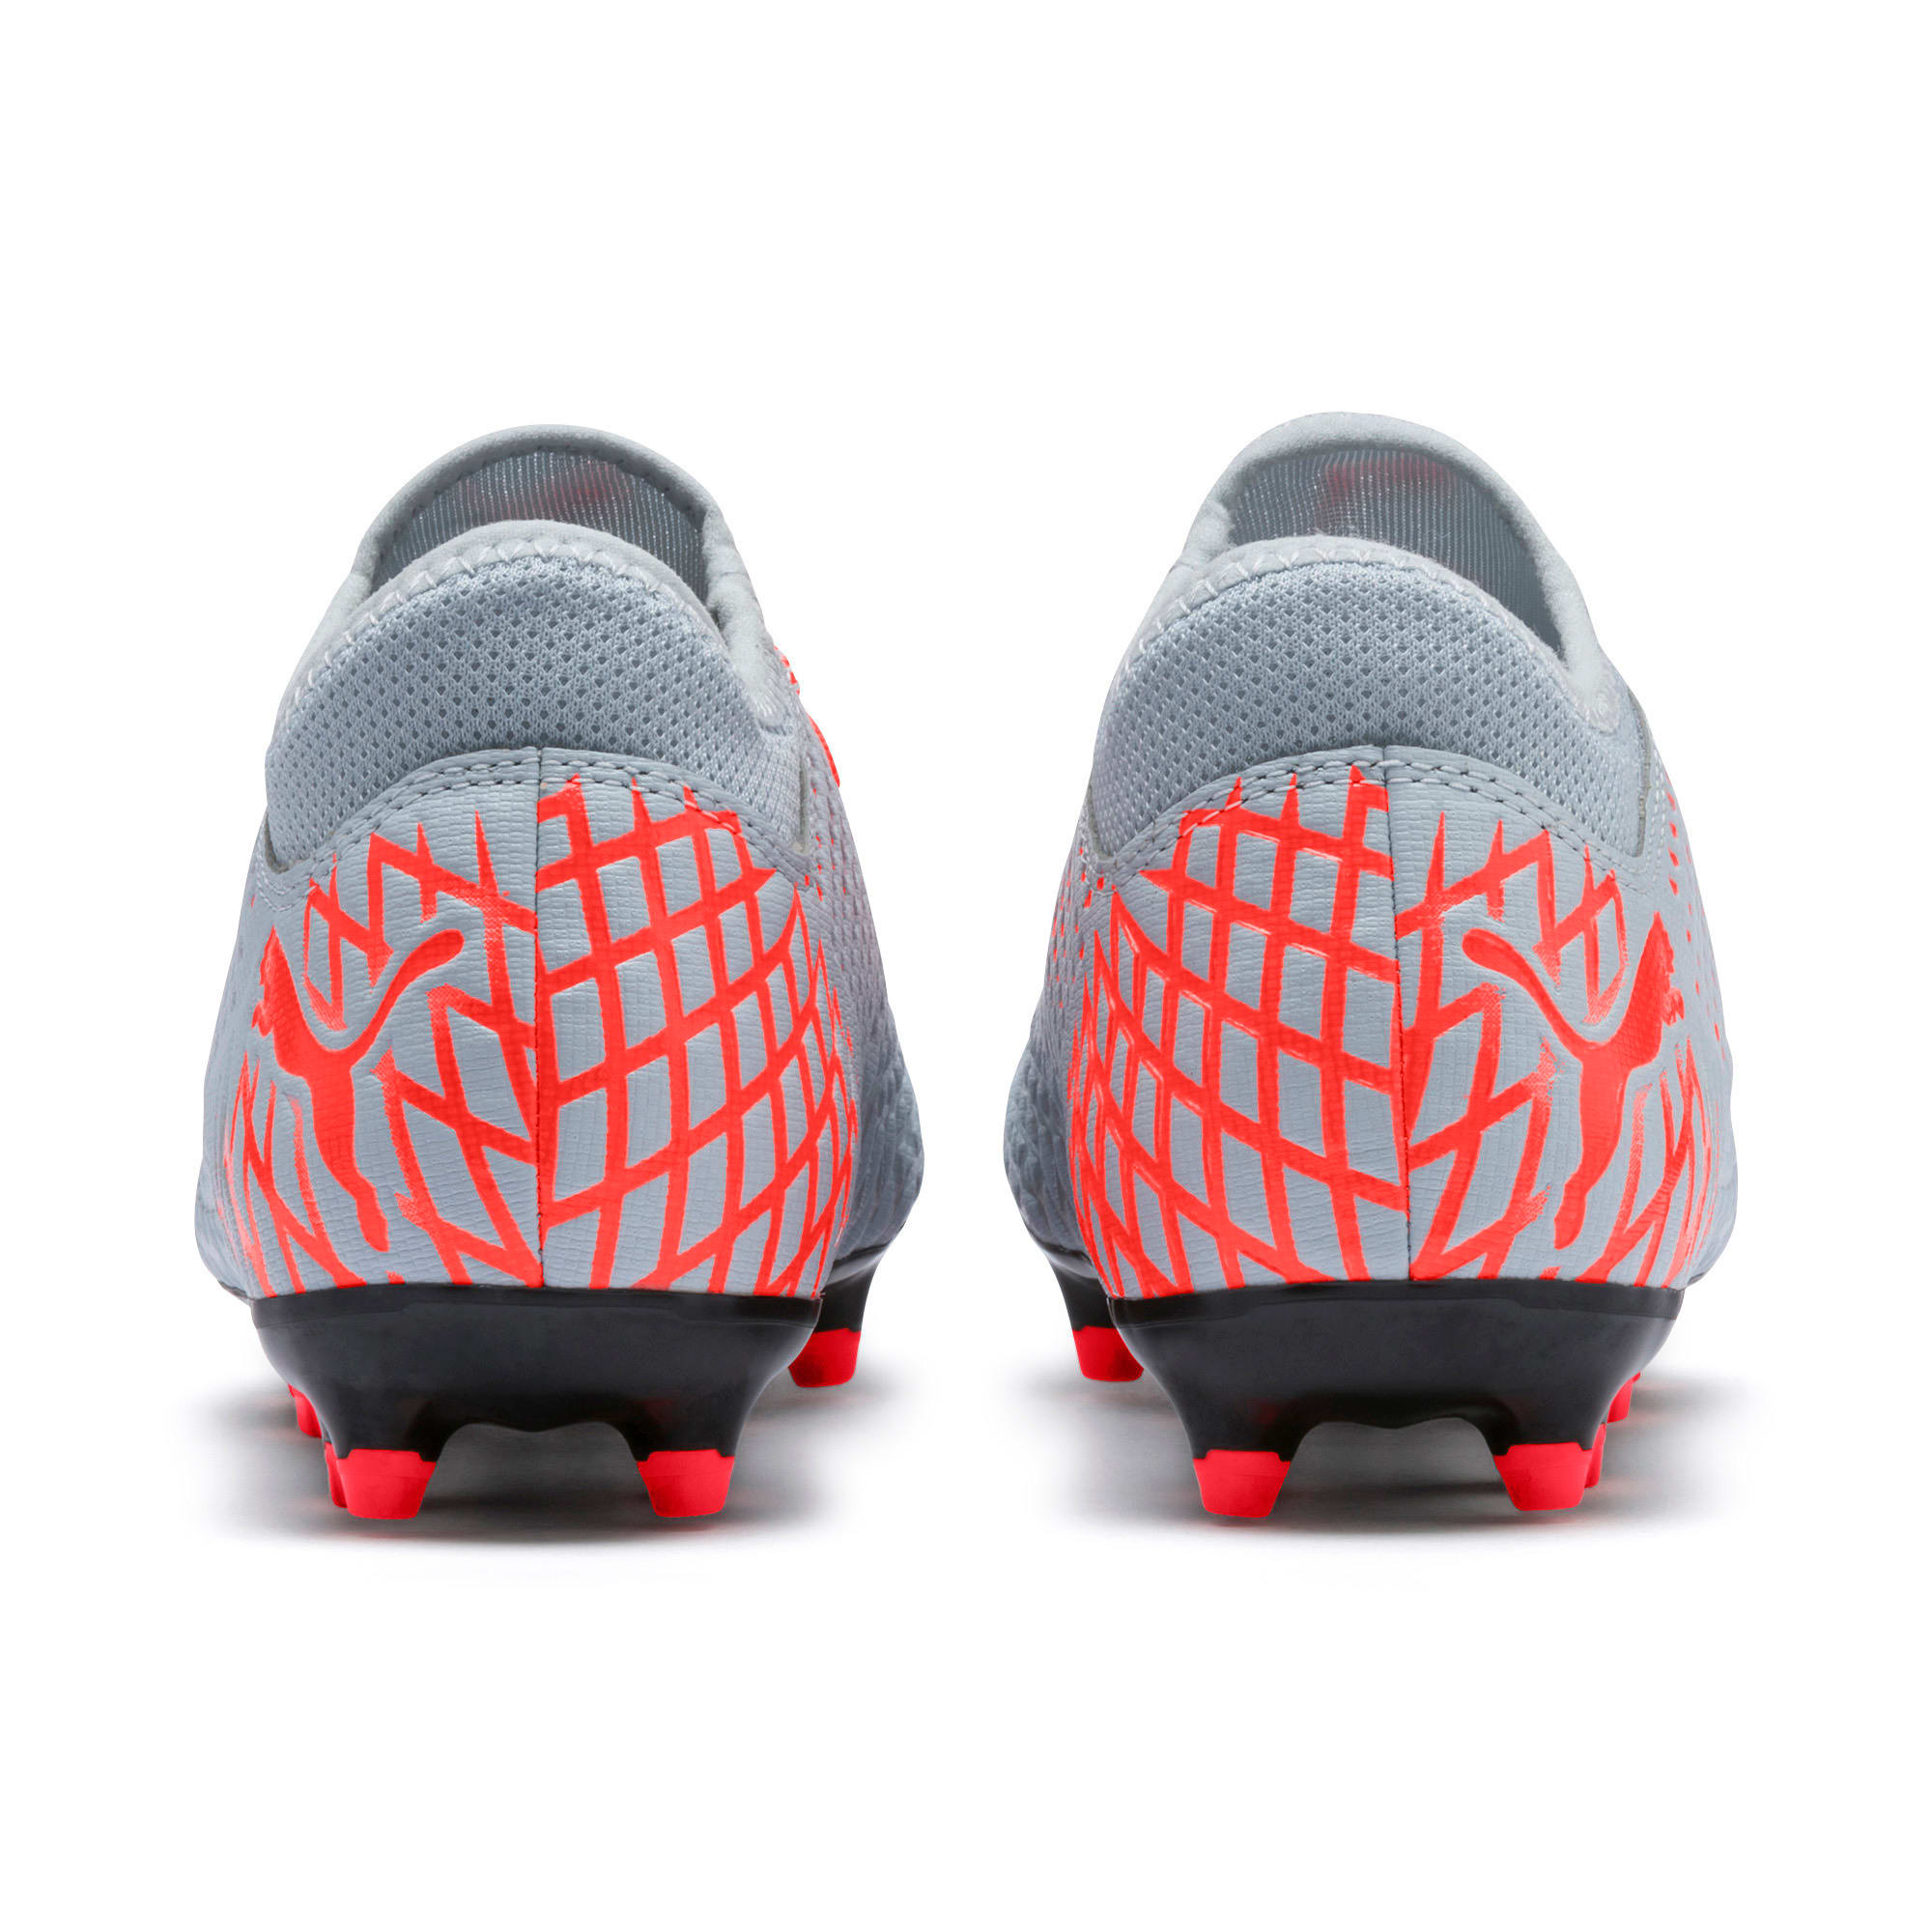 Thumbnail 3 of FUTURE 4.4 Youth Football Boots, Glacial Blue-Nrgy Red, medium-IND